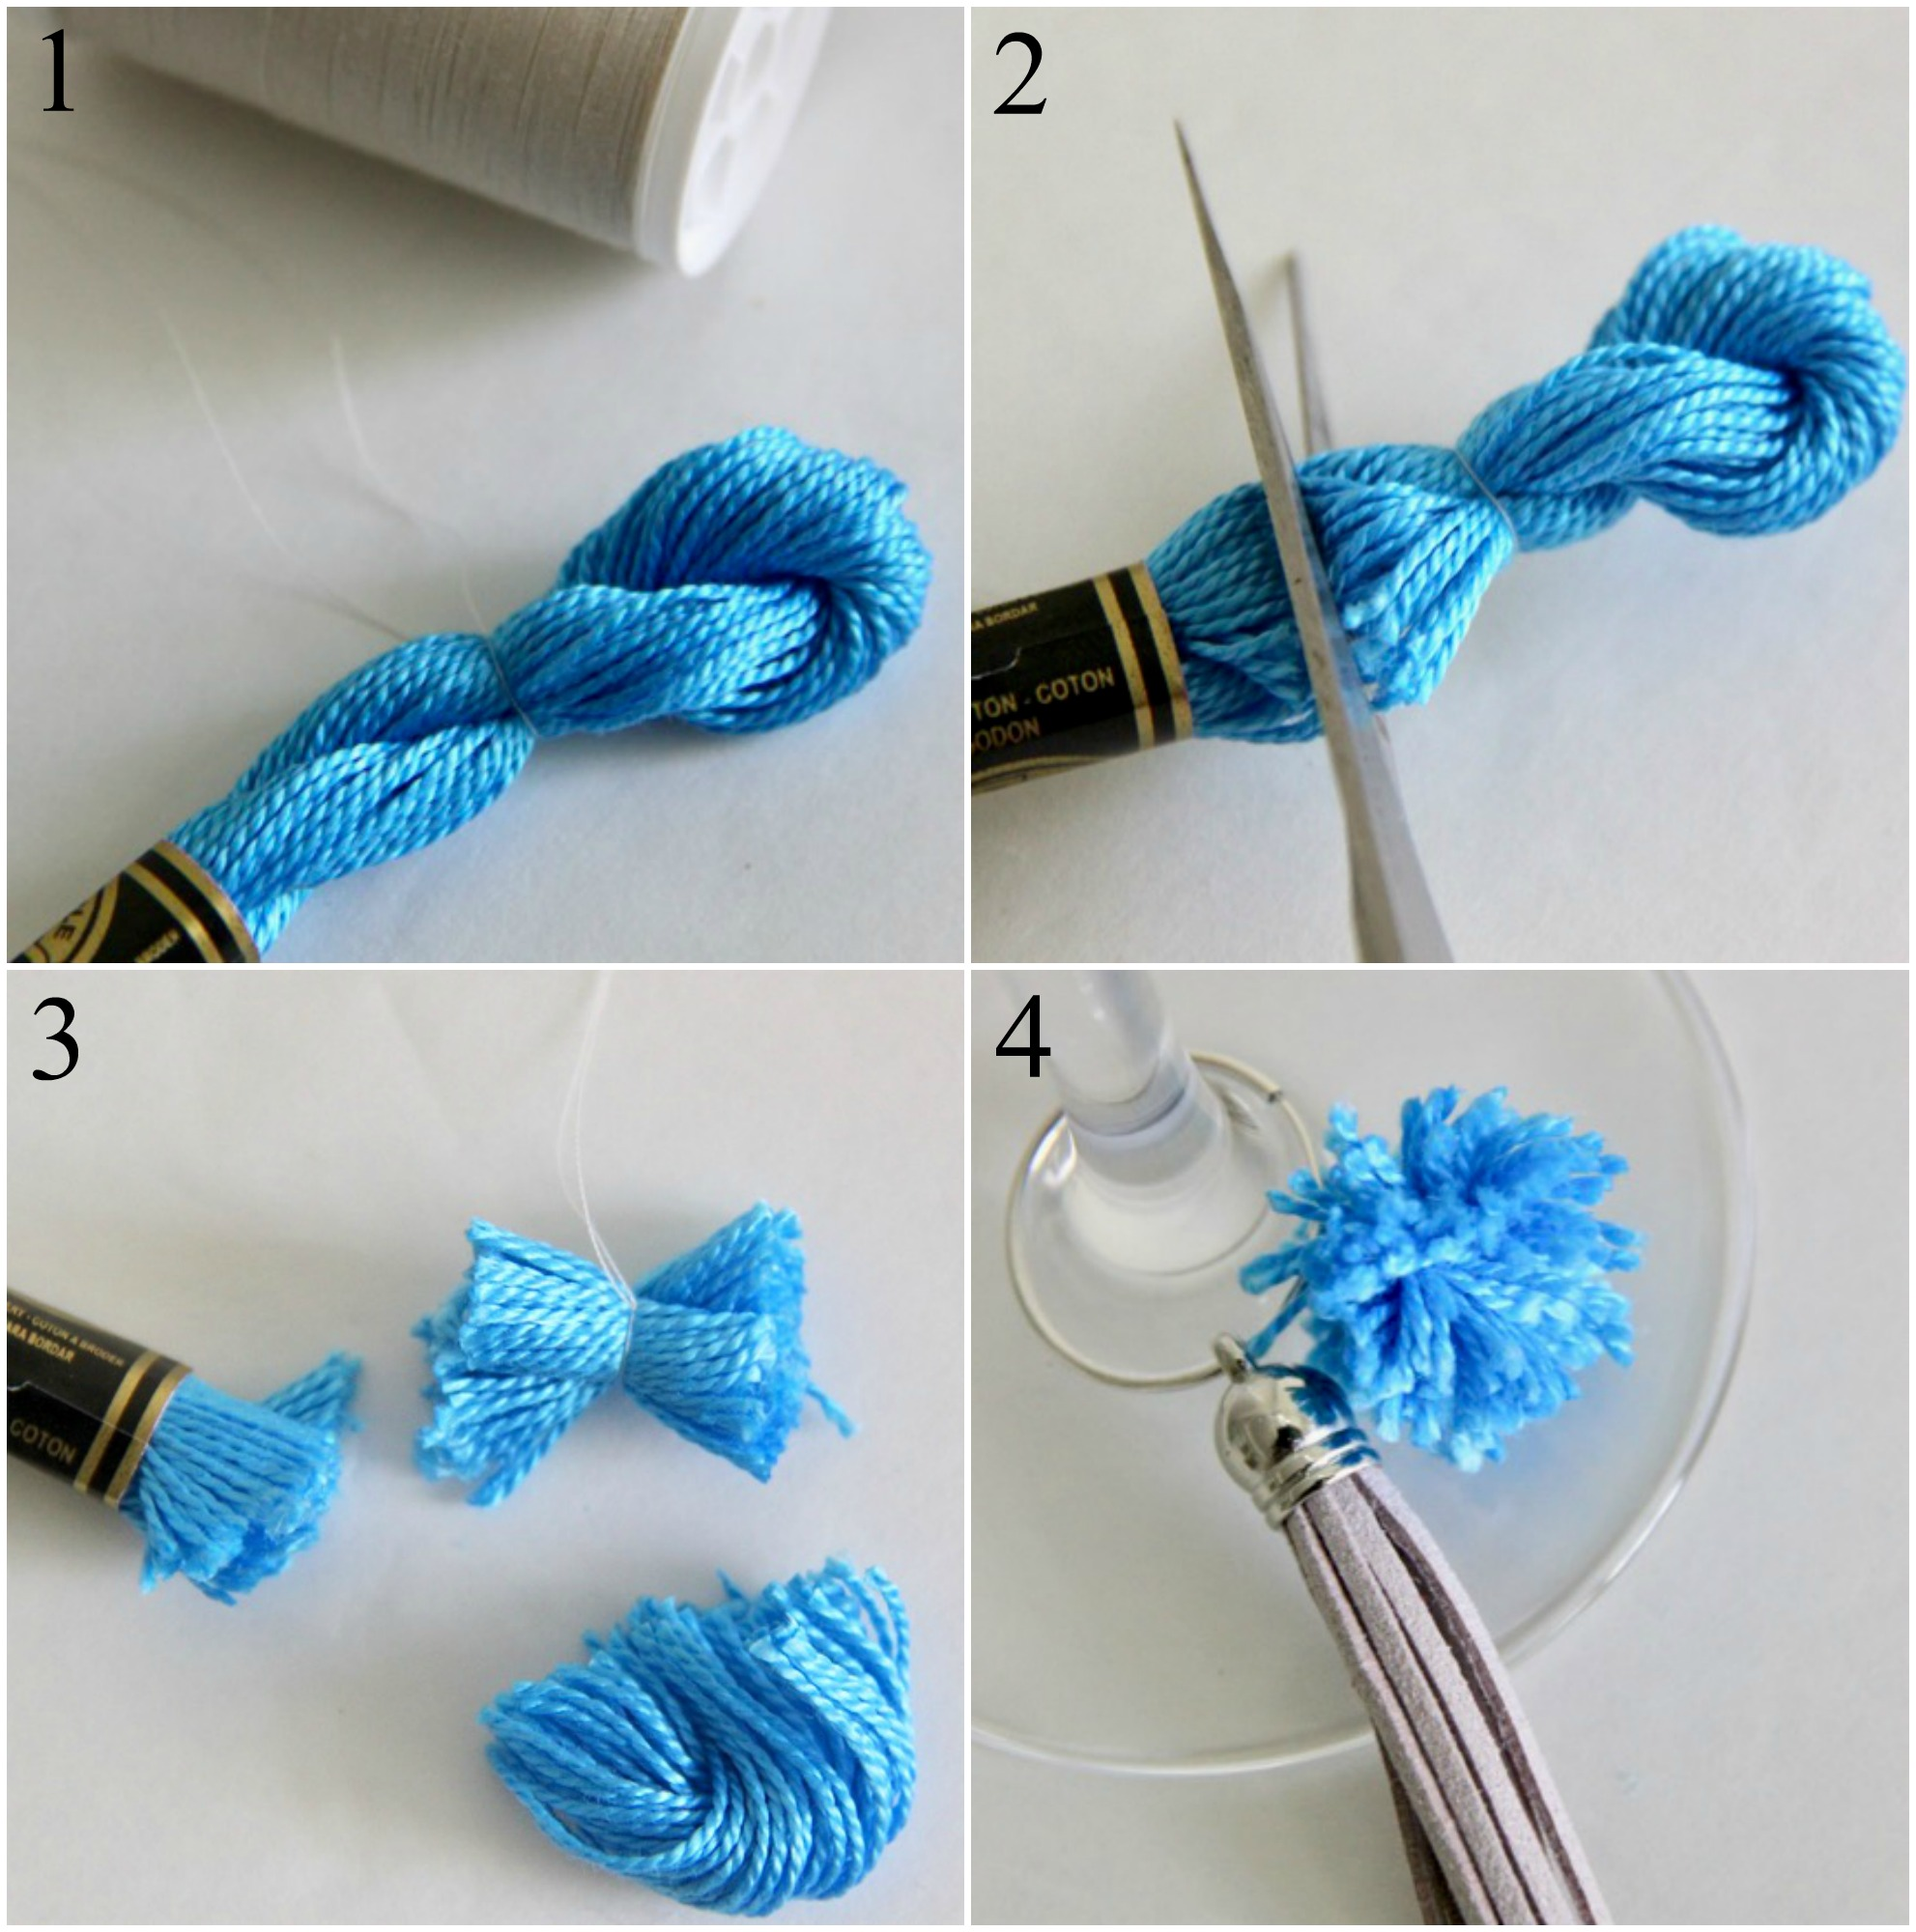 Tiny Embroidery Floss Pom Poms